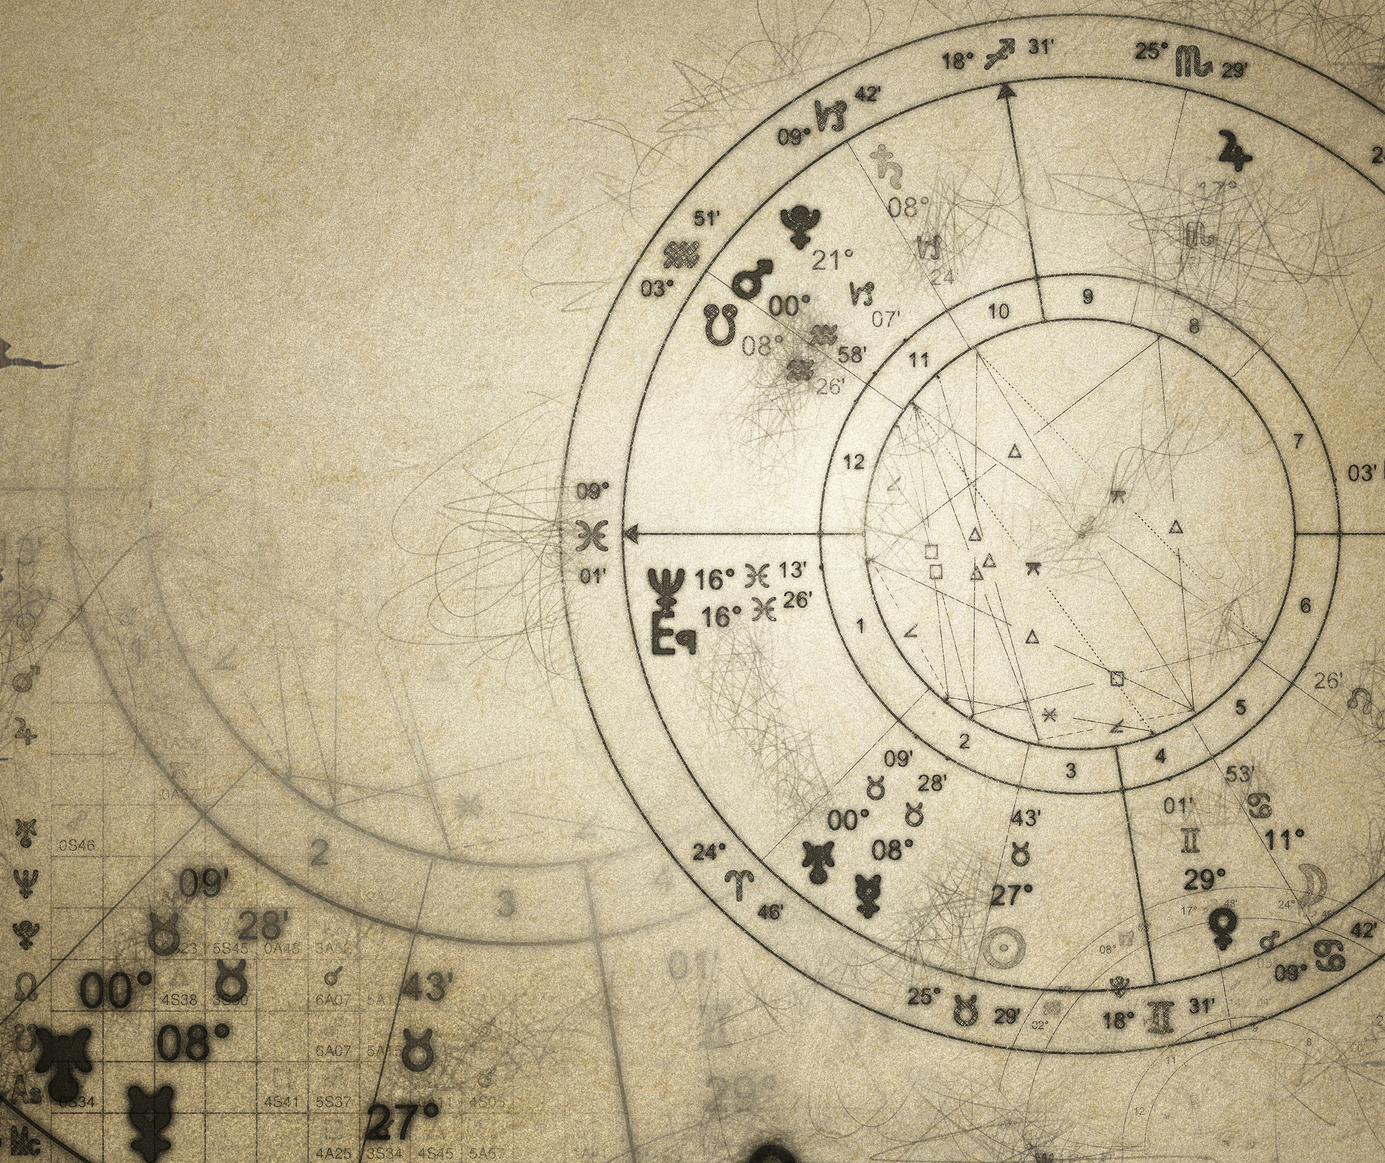 Health and Medical Astrology | LoveToKnow